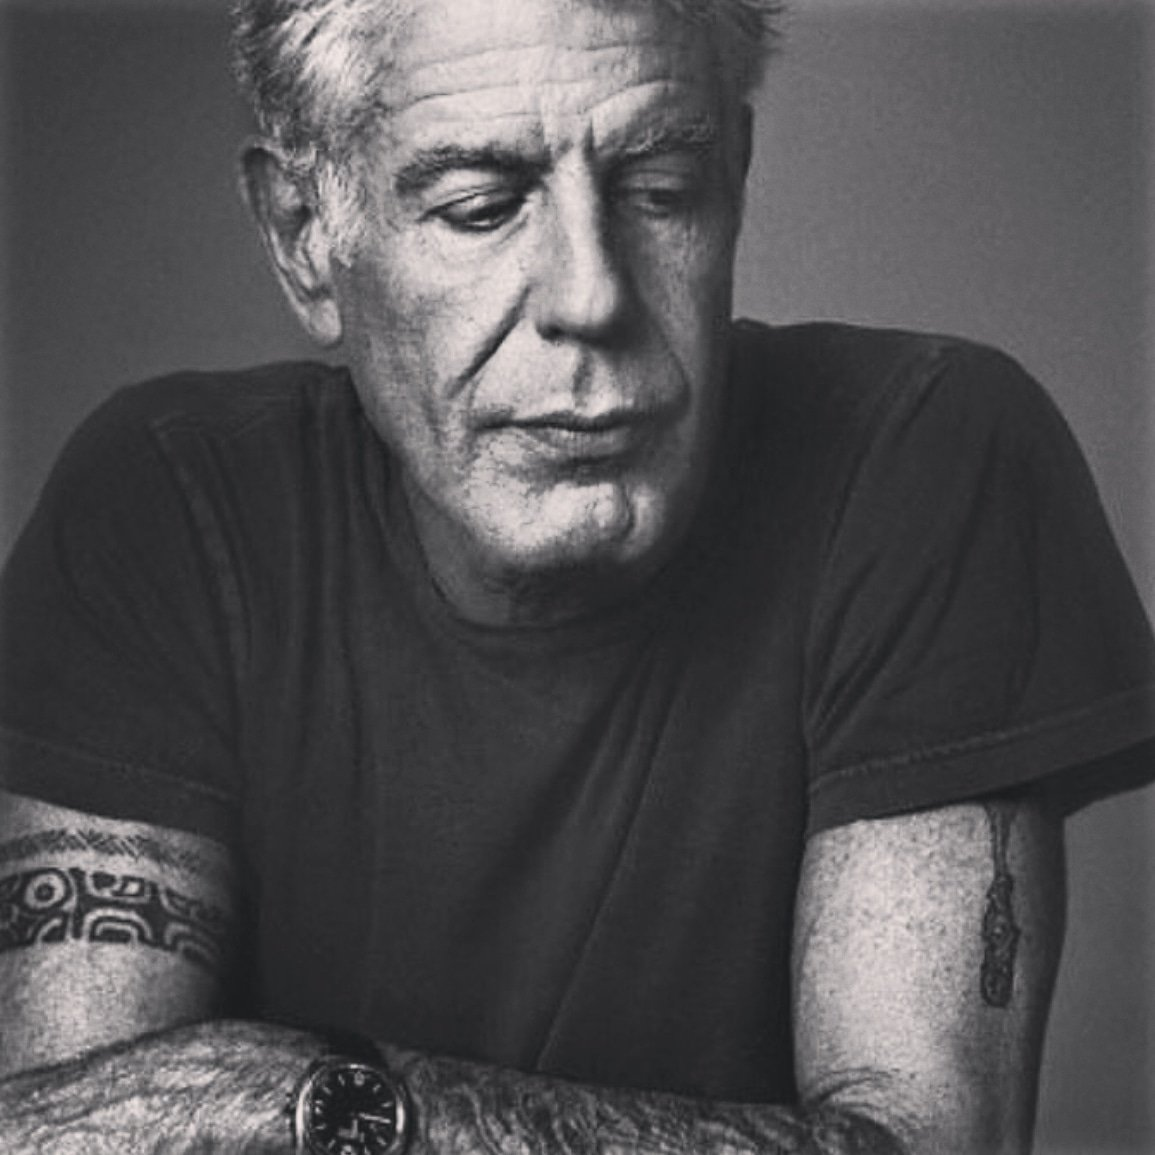 United States President, Donald Trump, Anthony Bourdain, France, G7 summit, Barack Obama, Parts Unknown, CNN, Anthony Bourdain No Reservations, Chef, traveler, Suicide, Kitchen Confidential,